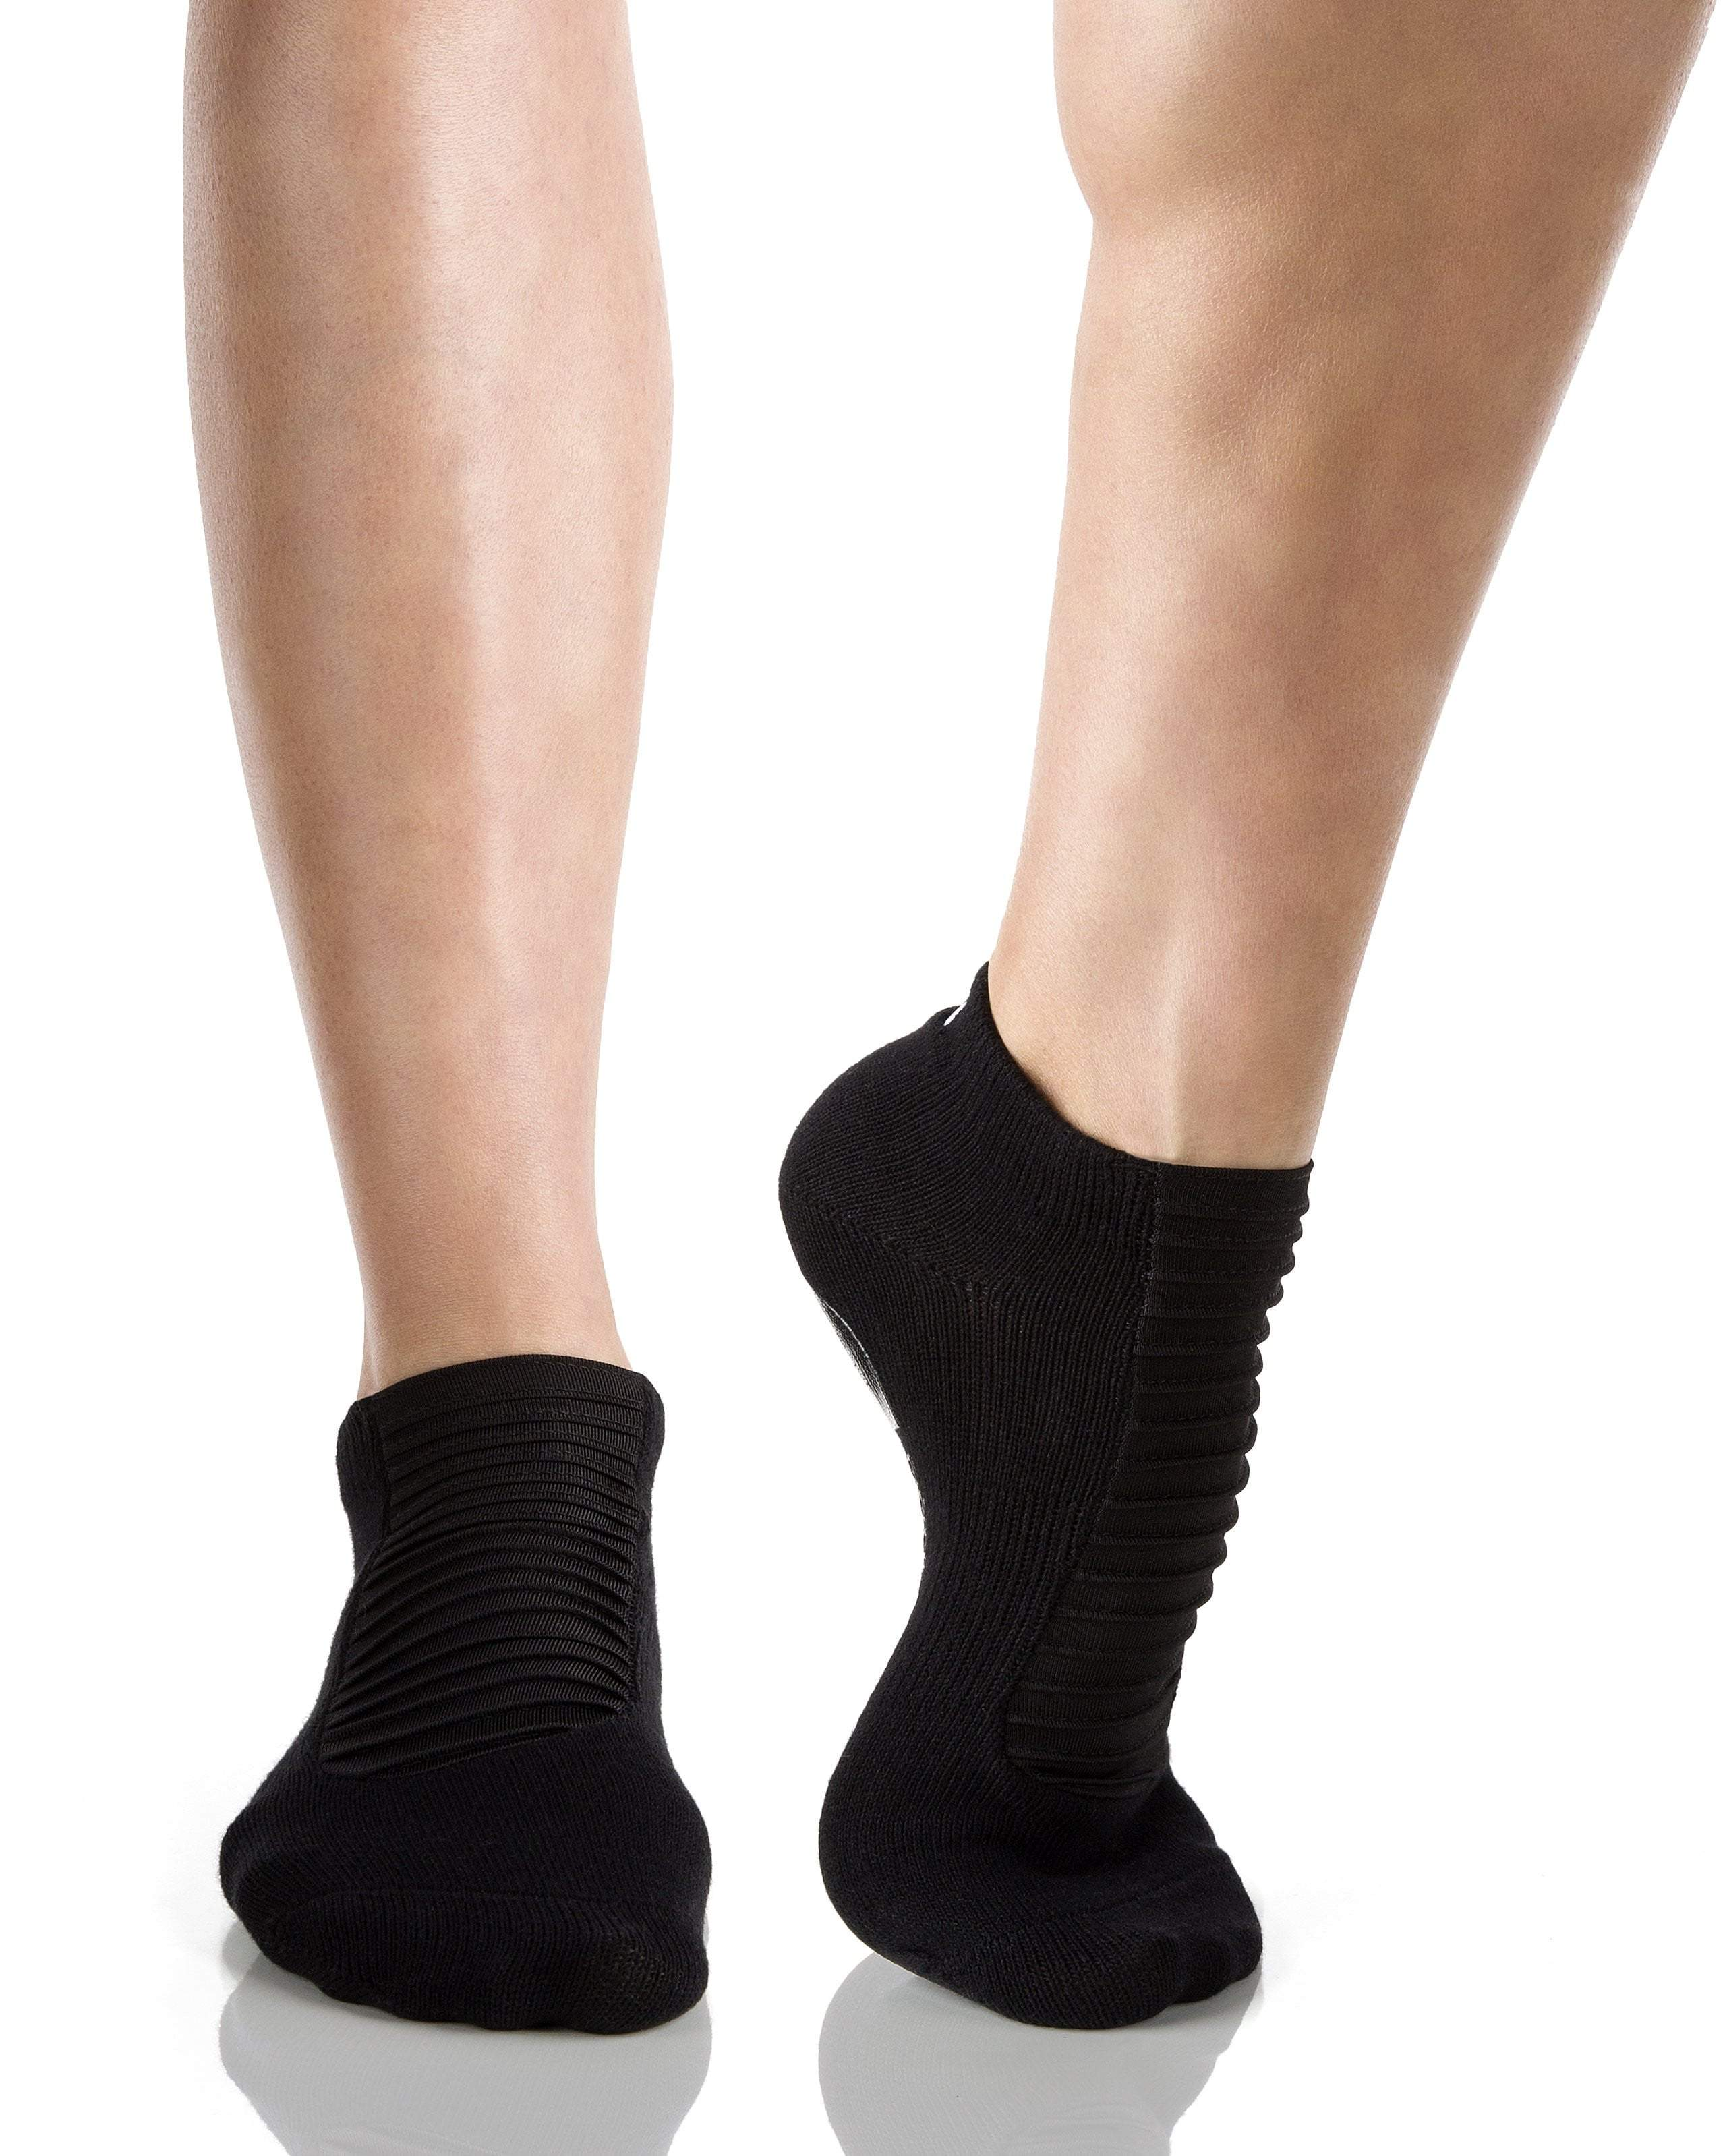 MOTO Closed Toe Grip Socks, Black